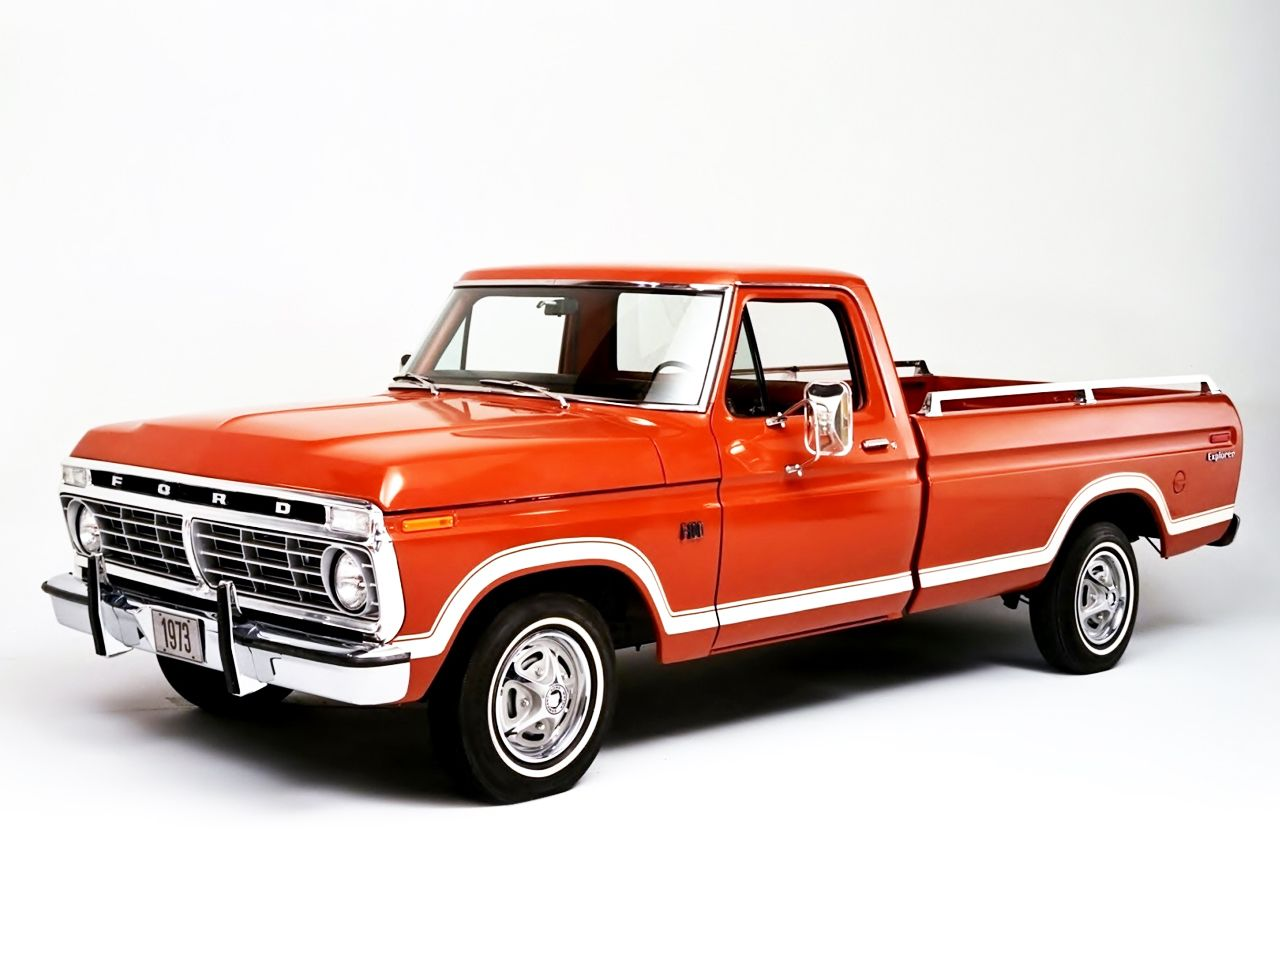 ford f100 1973 maintenance restoration of old vintage vehicles the material for new cogs. Black Bedroom Furniture Sets. Home Design Ideas